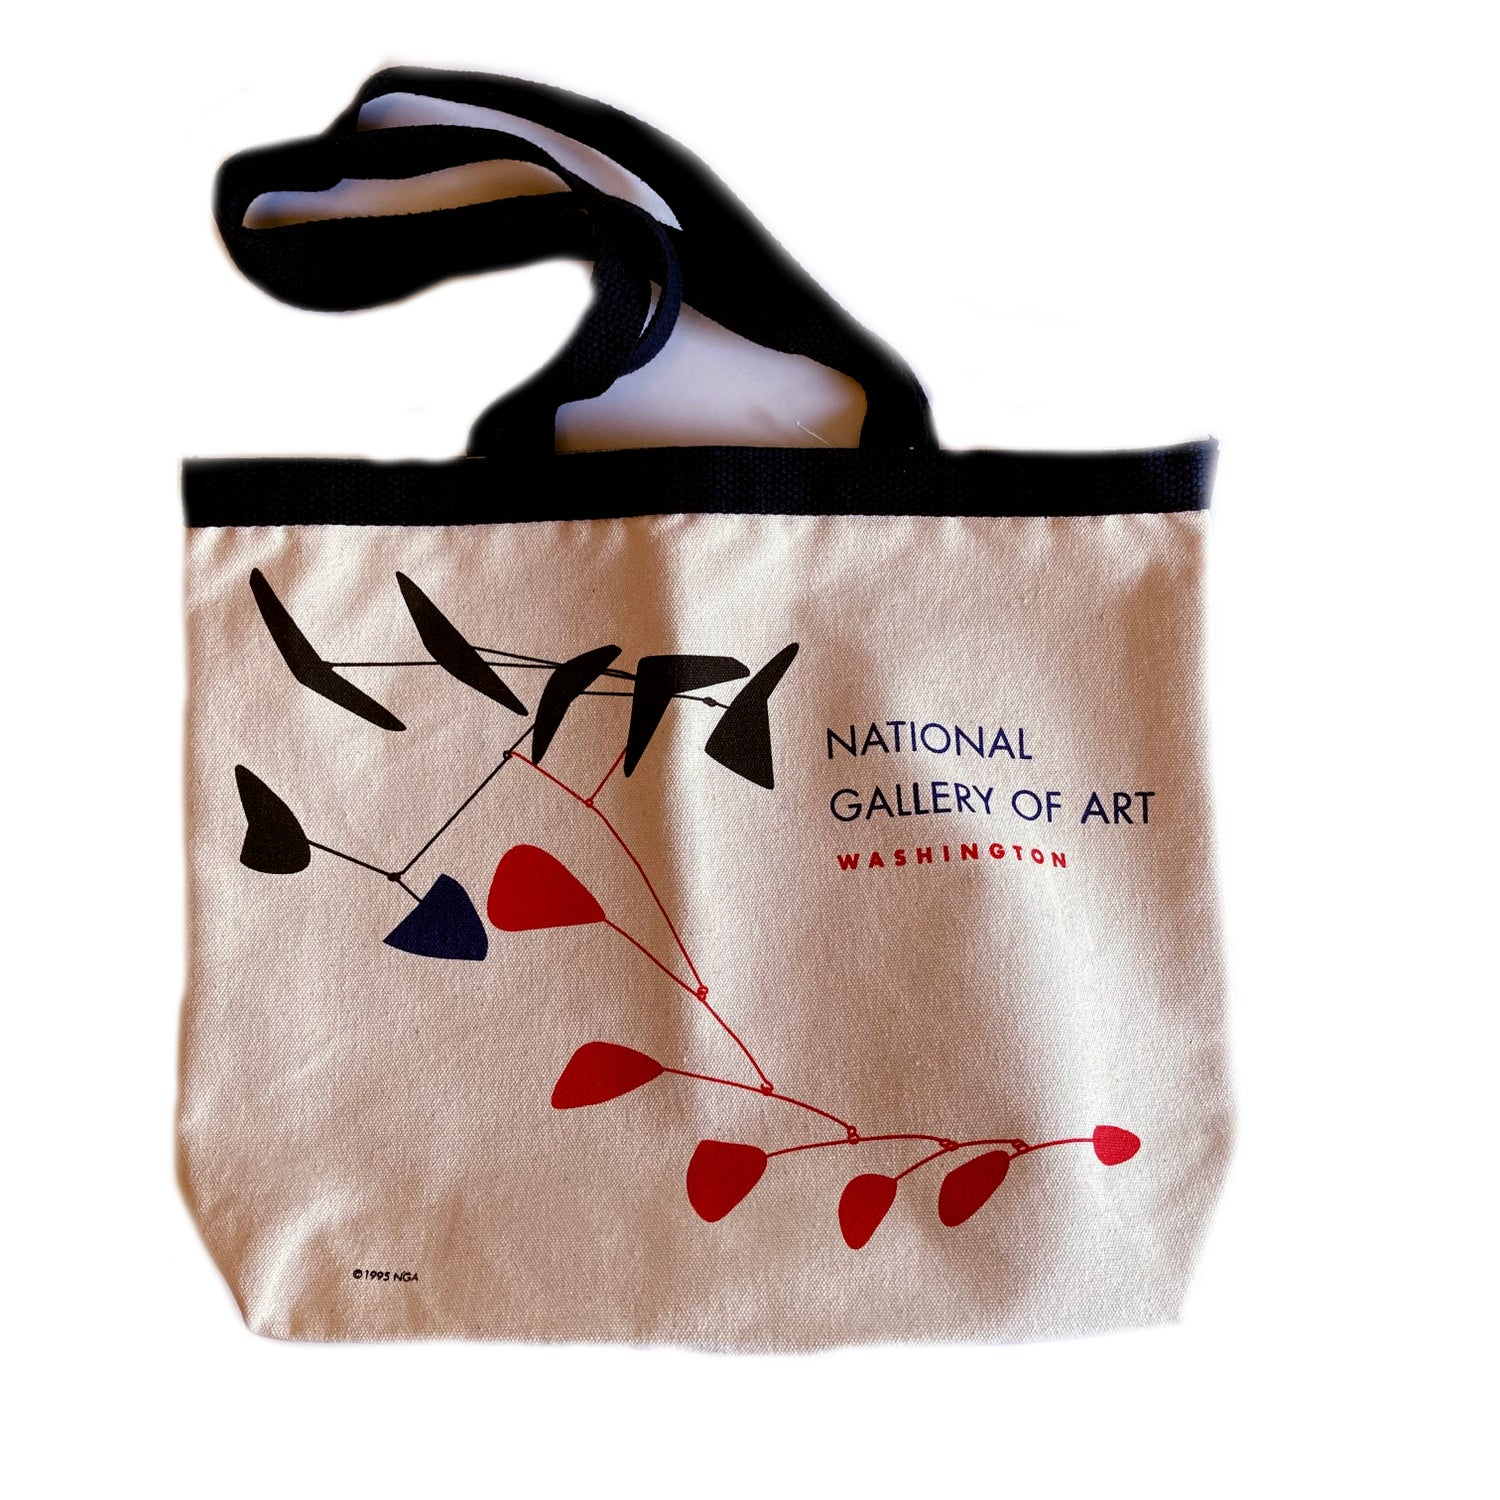 Image of Calder Untitled 1976 Canvas Tote